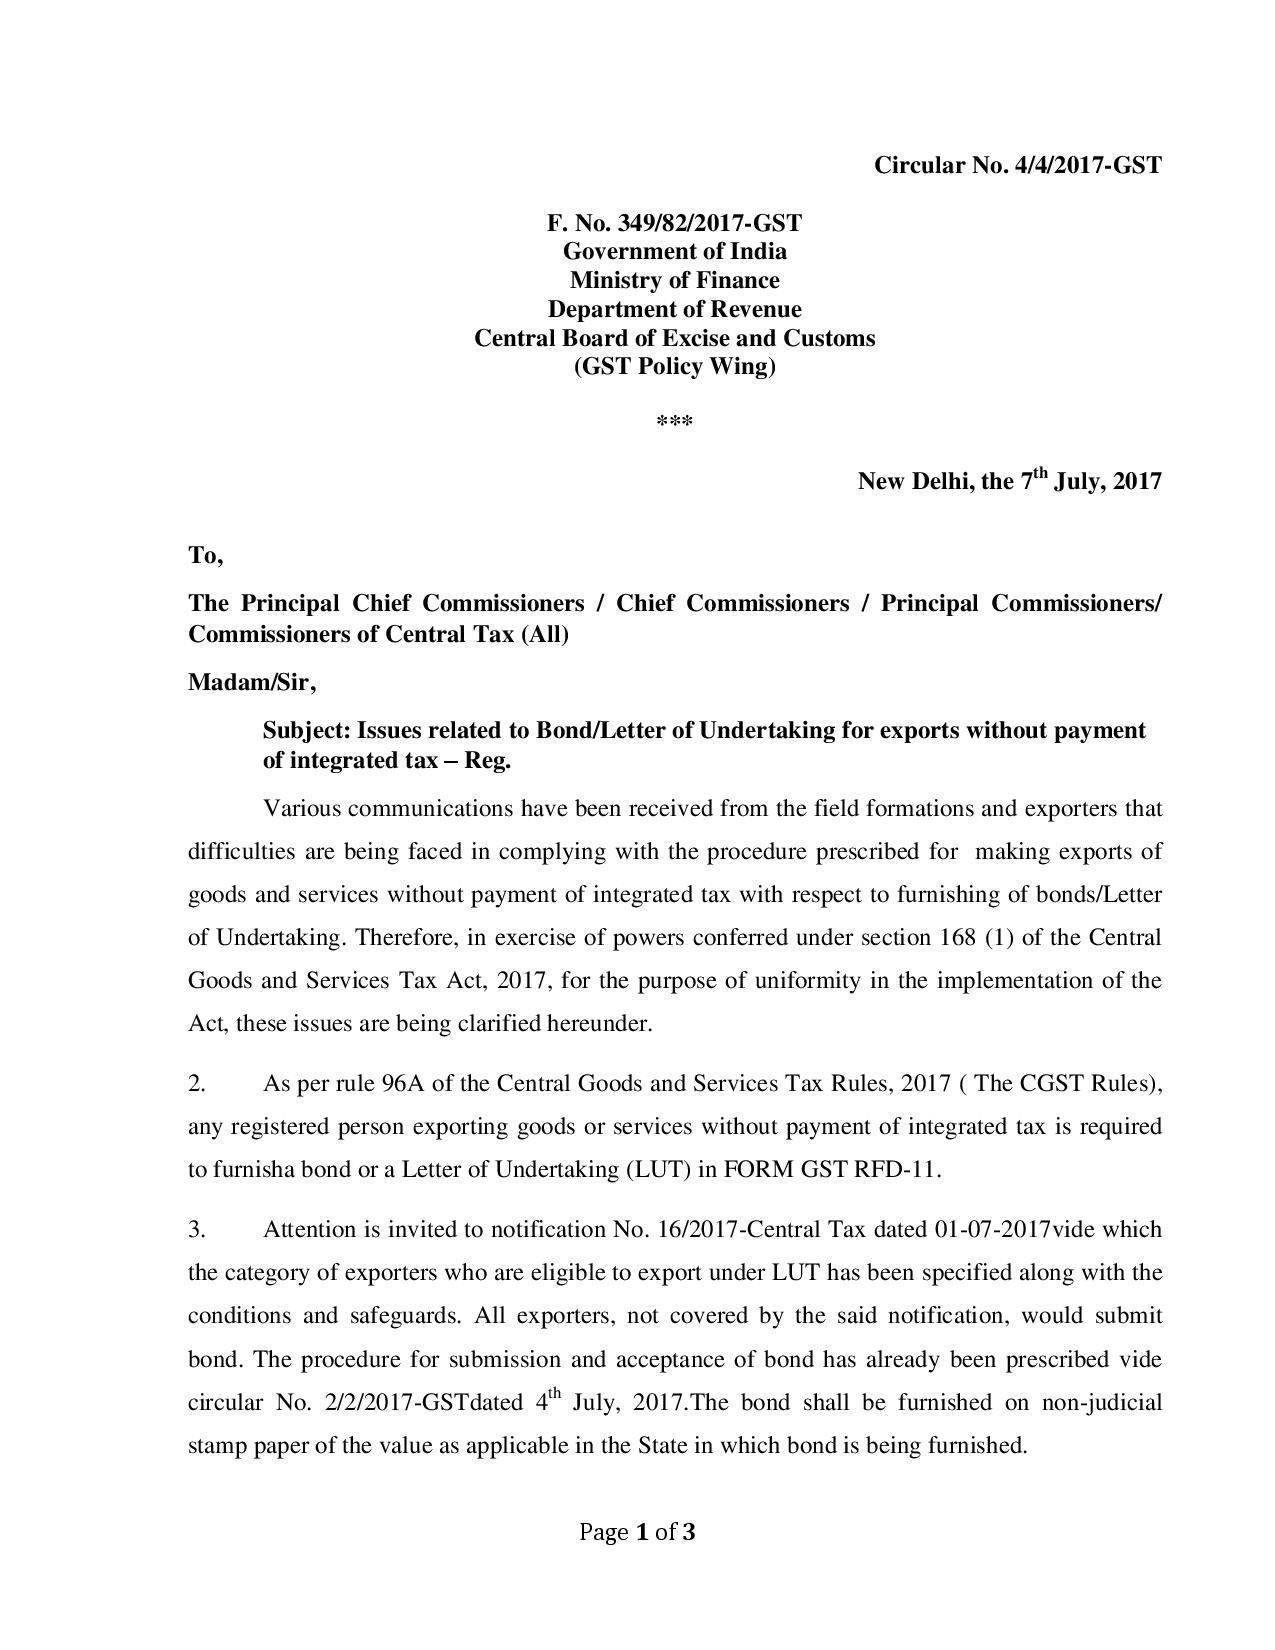 009 Dreaded Letter Of Understanding Format In Gst Photo Full